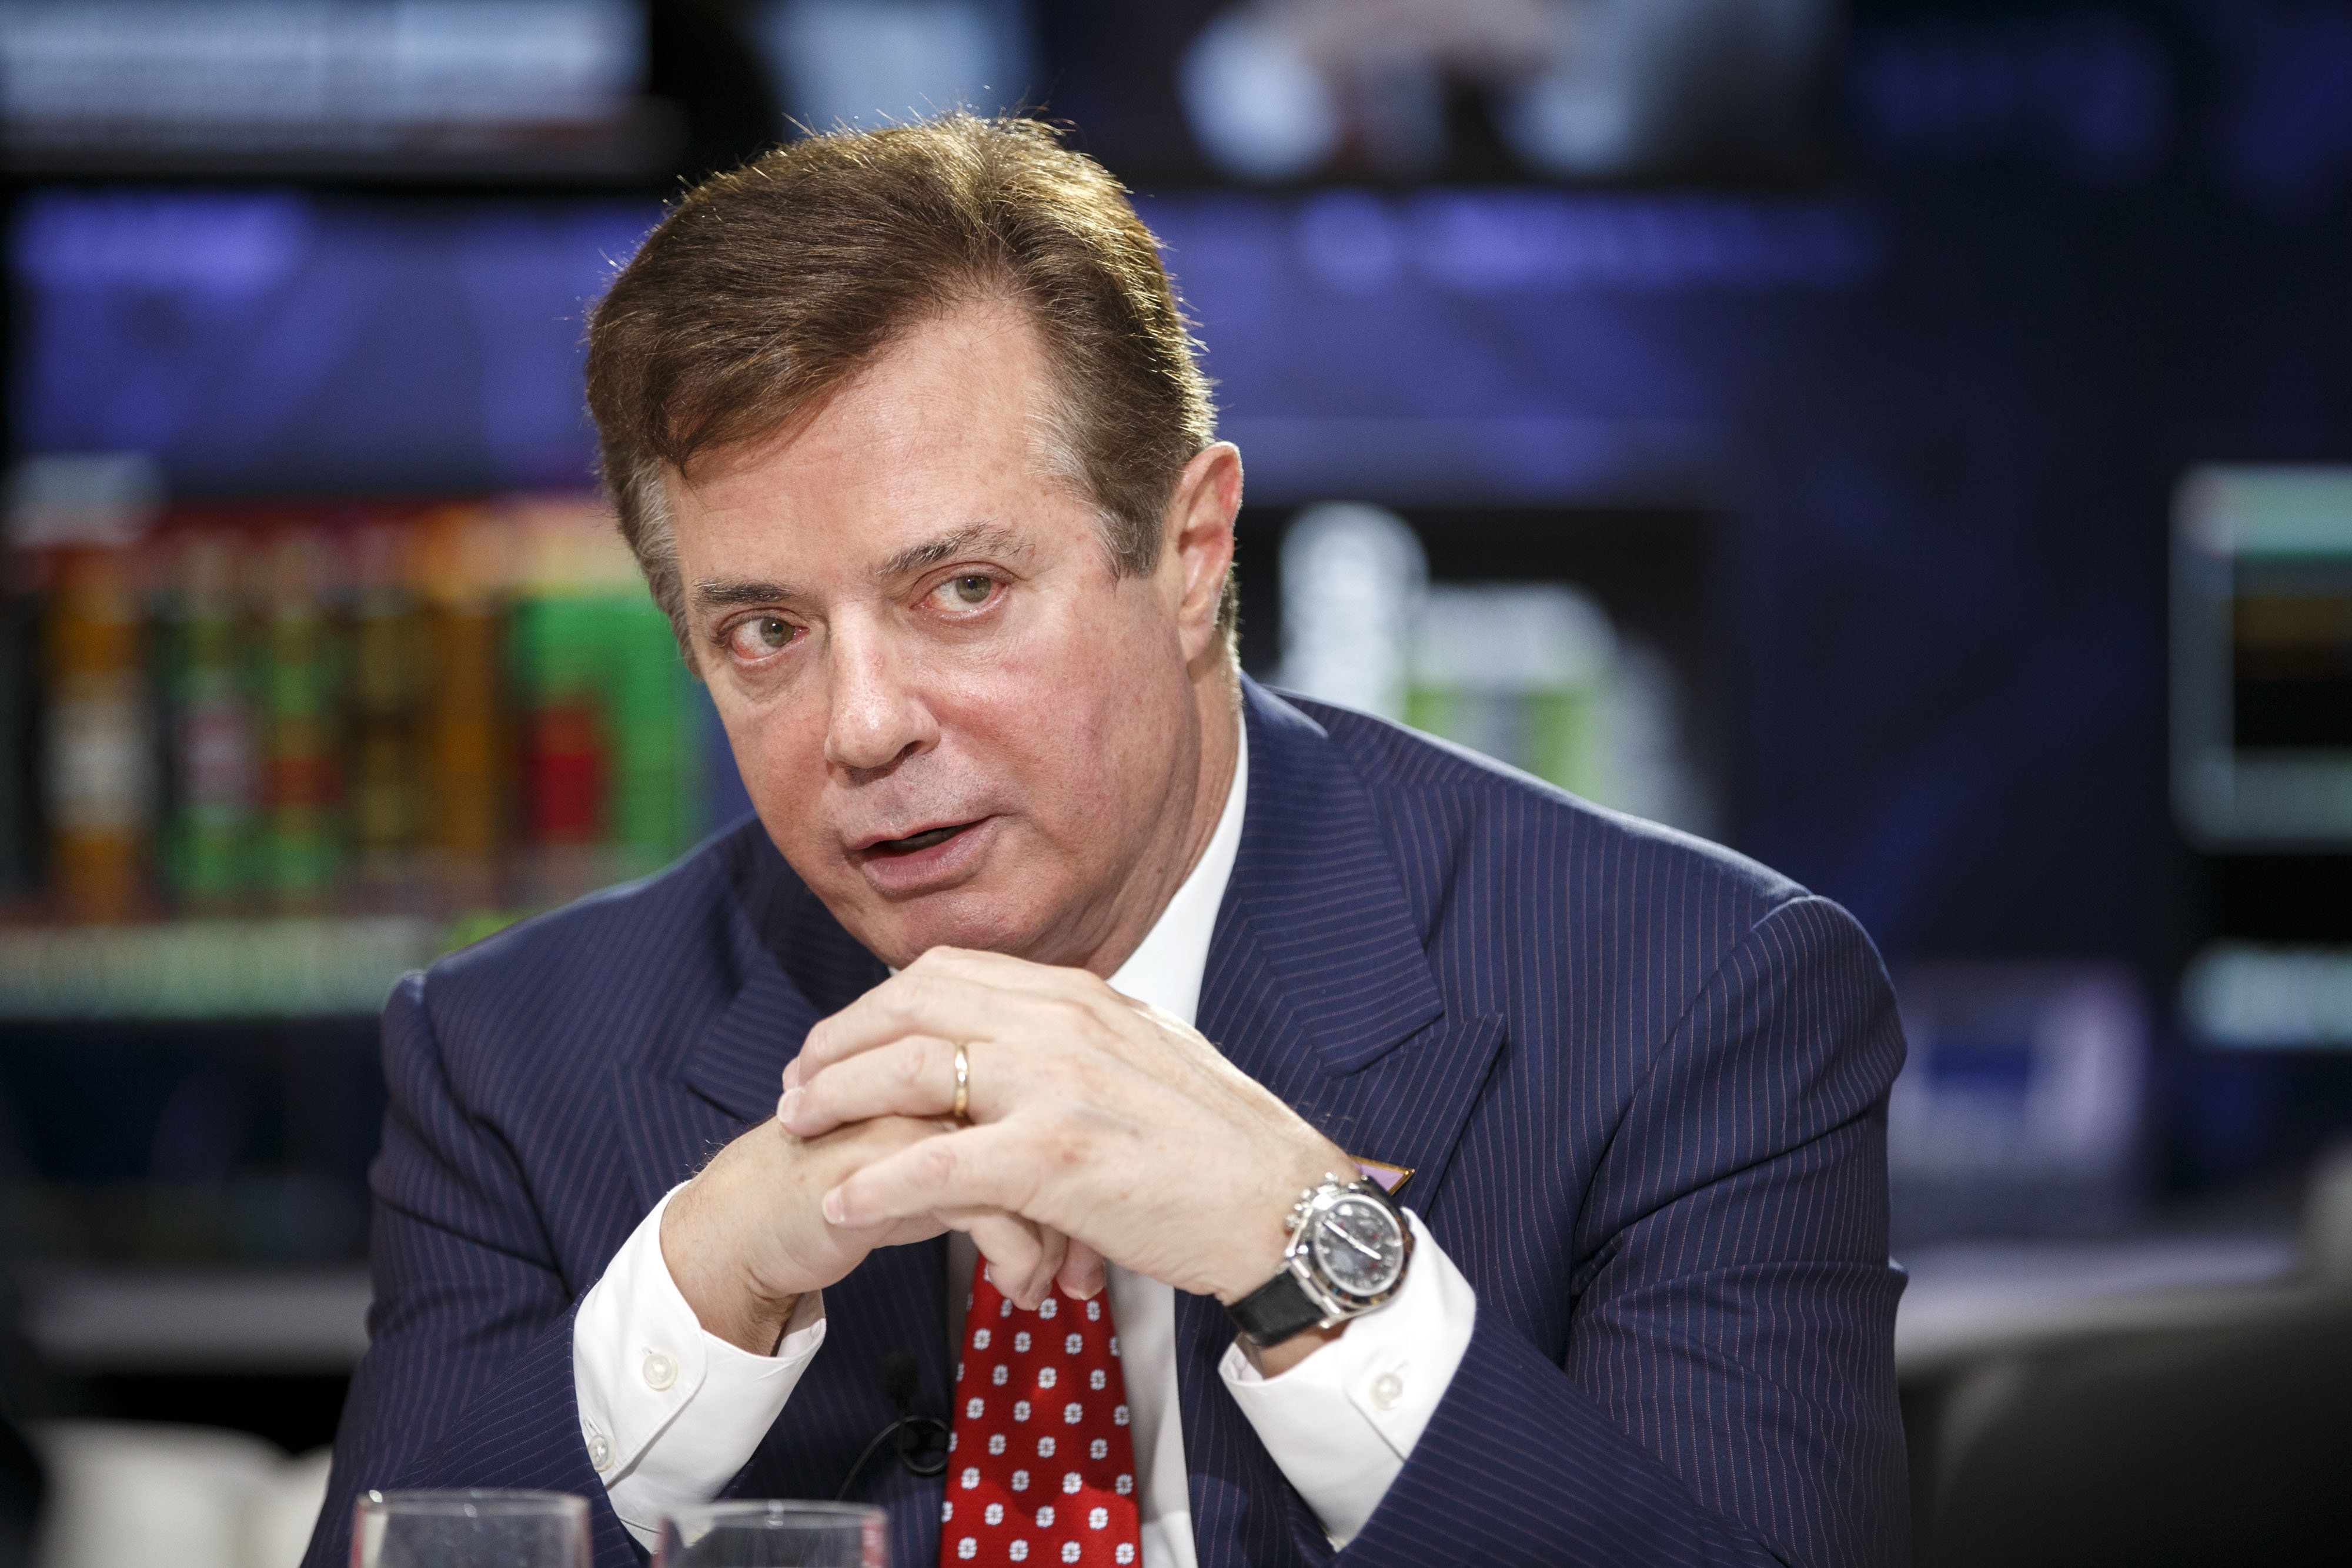 Former campaign chairman Paul Manafort lied to federal investigators, a U.S. District judge